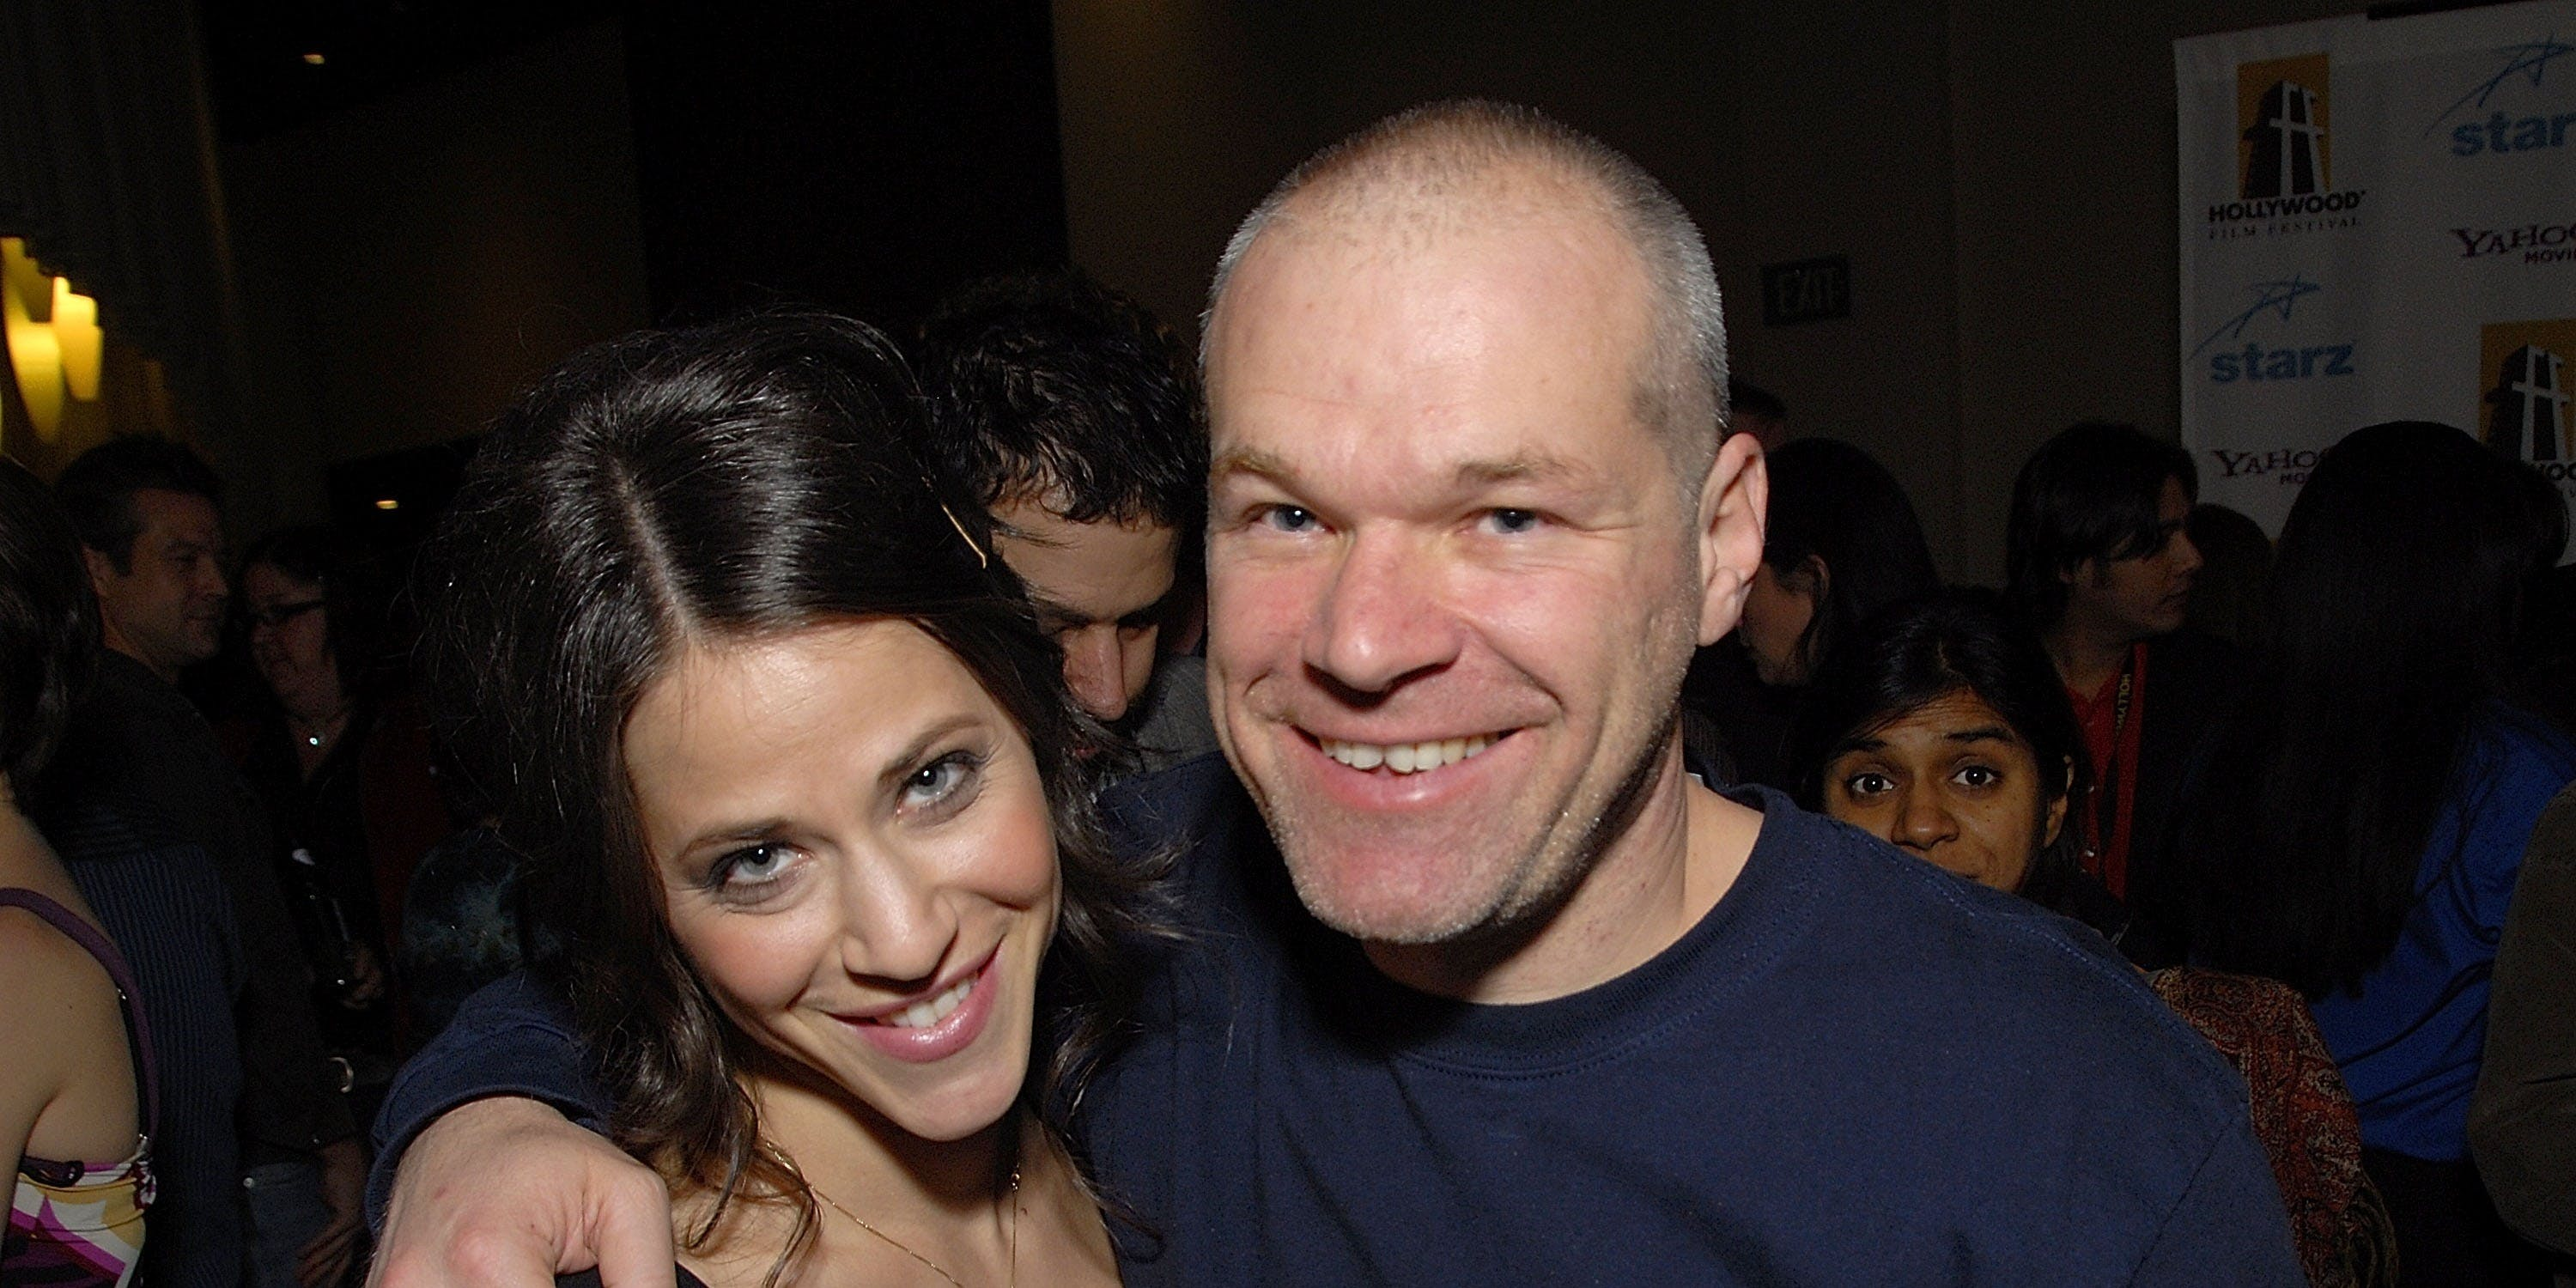 LOS ANGELES, CA - OCTOBER 21:  Actress Jackie Tohn and director Uwe Boll attend the 2007 Hollywood Film Festival day five awards ceremony and after-party at the Arclight theatres on October 21, 2007 in Los Angeles, California.  (Photo by Charley Gallay/Getty Images)